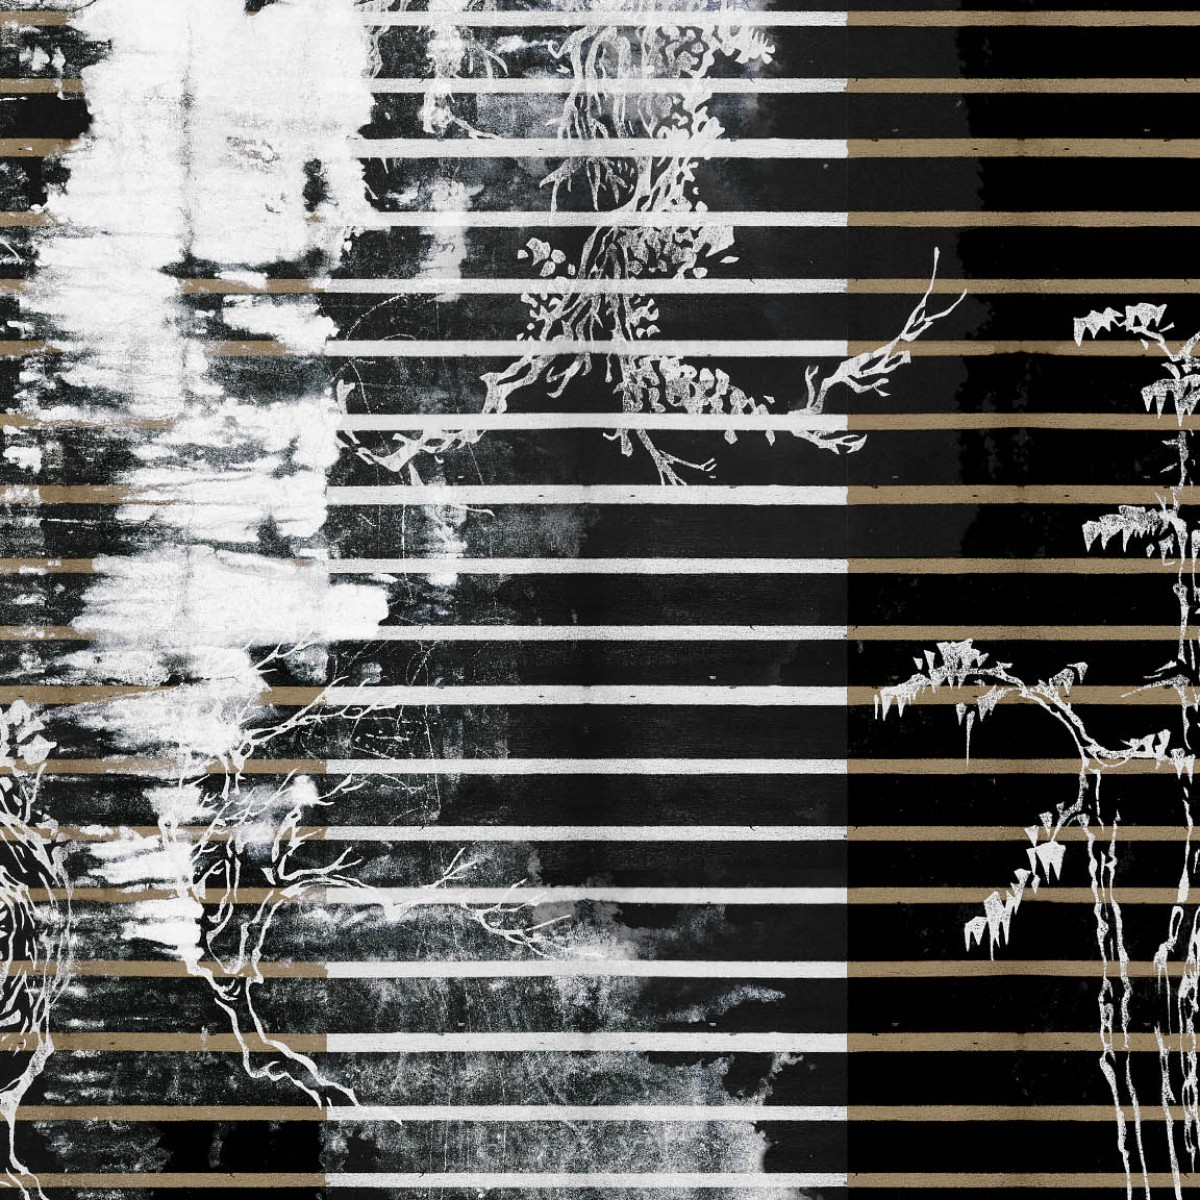 Fototapet contemporan Urban glitch, personalizat, idea murale